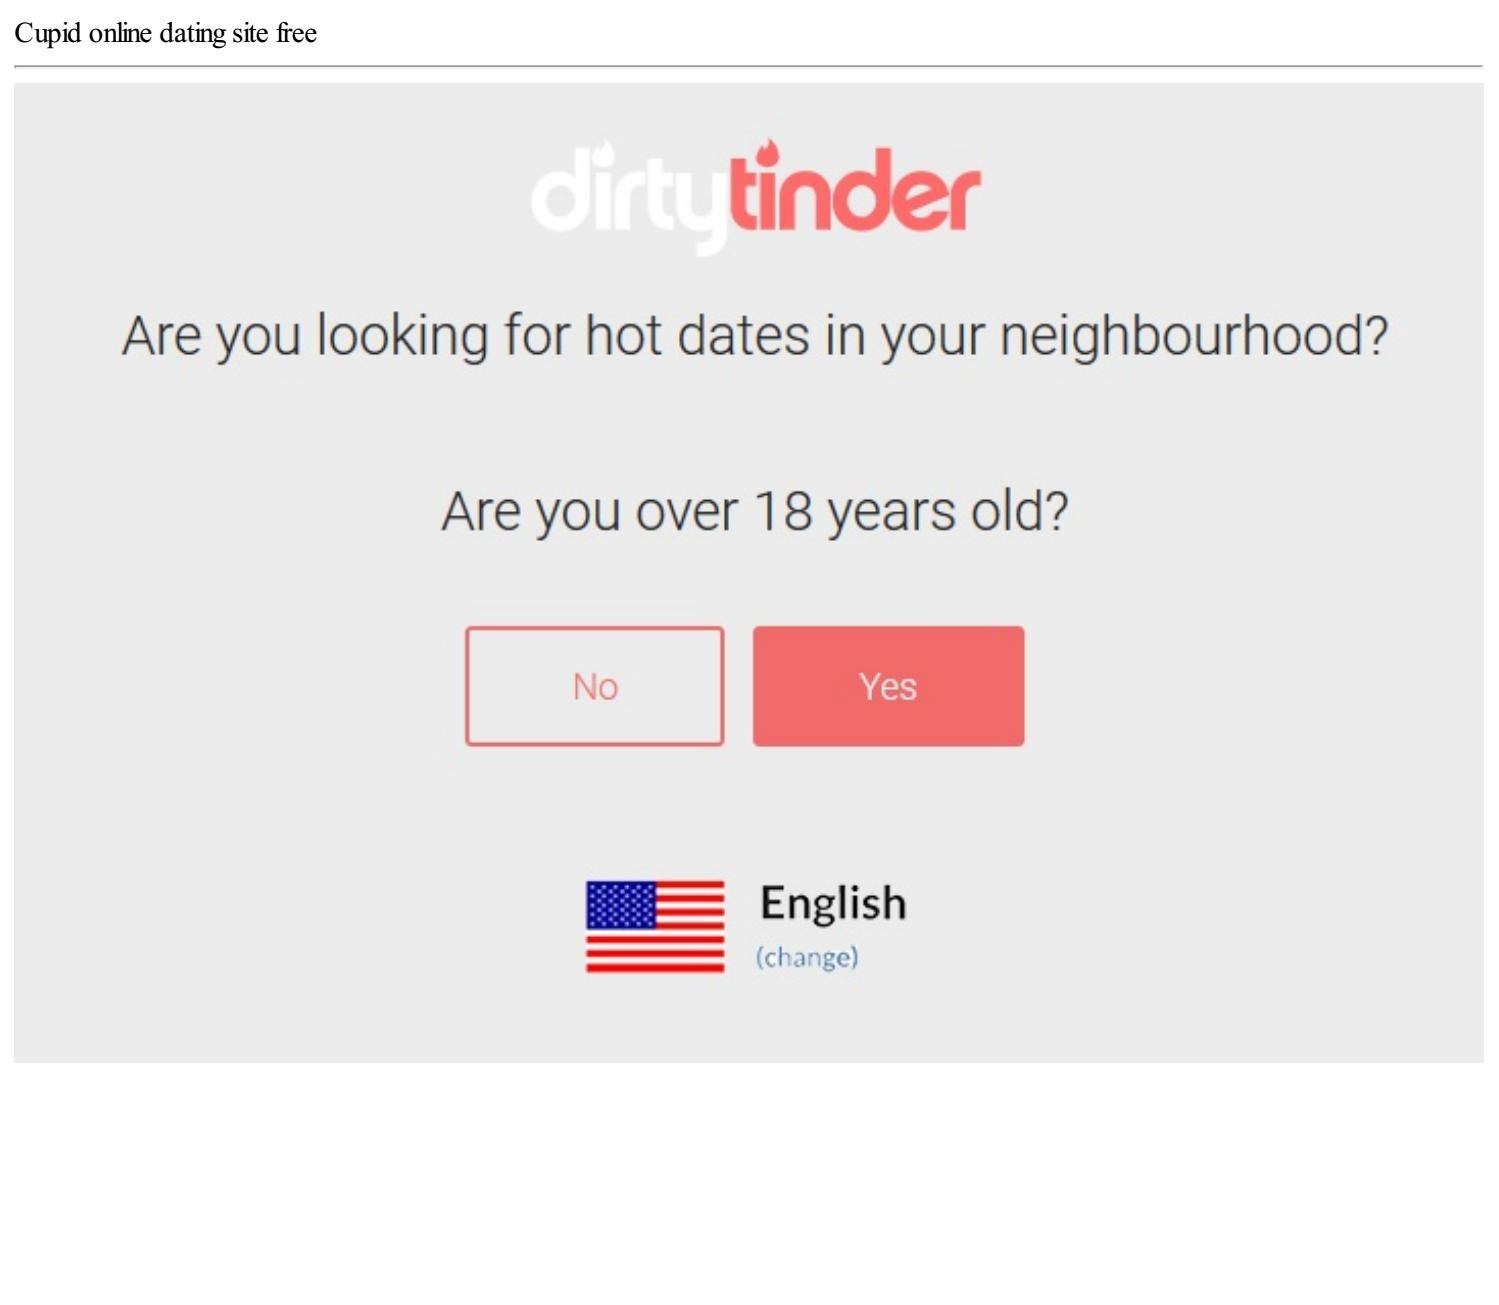 dating pimeässä sovelletaan UK